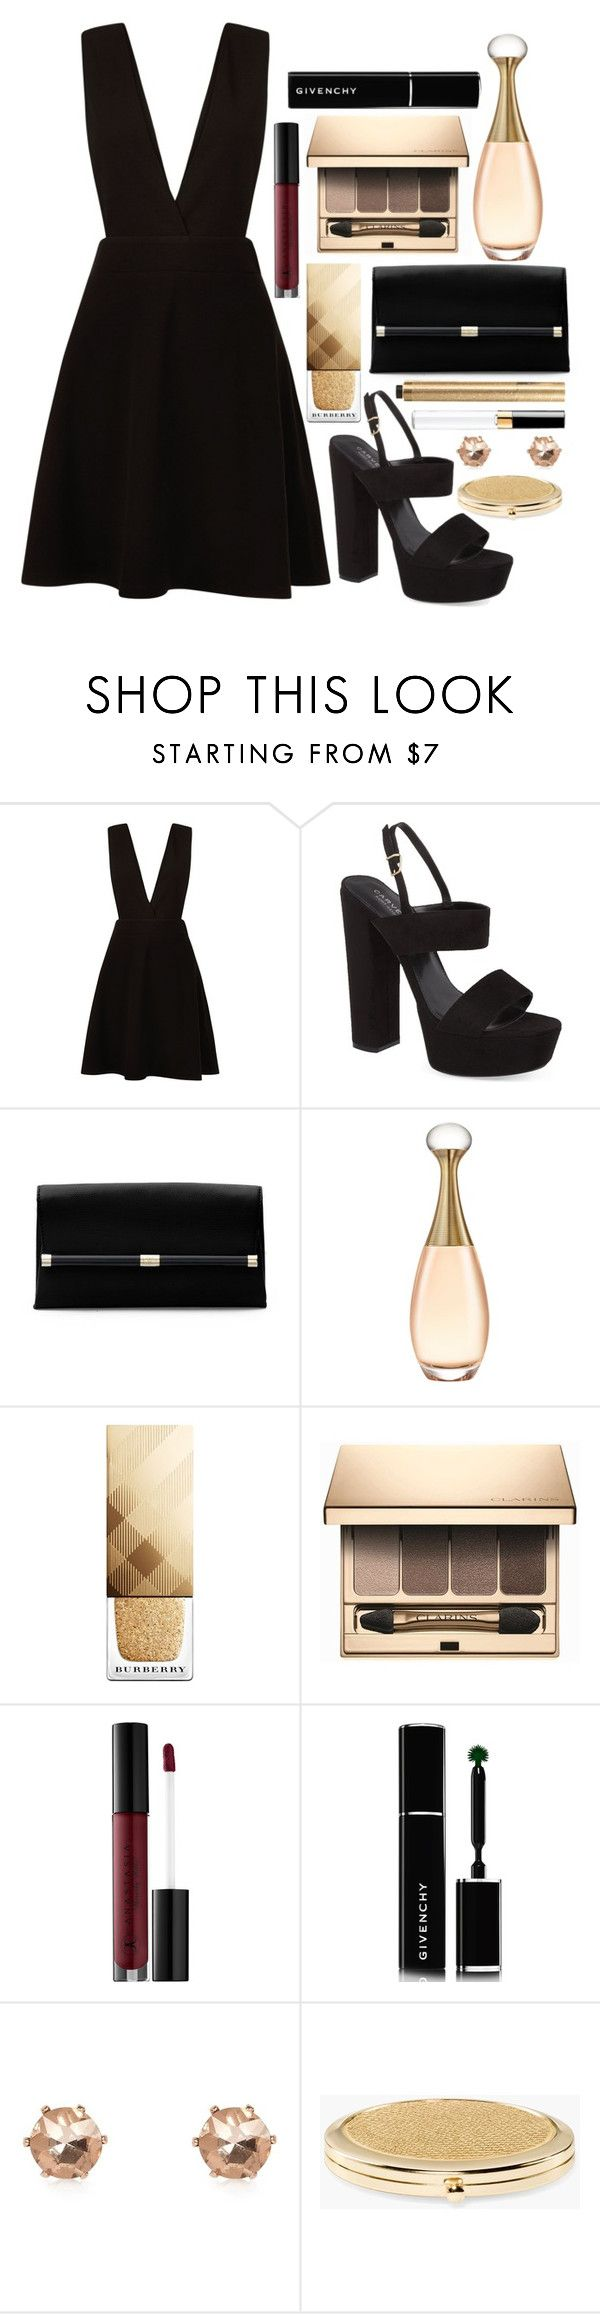 """#74"" by nastya097 ❤ liked on Polyvore featuring New Look, Carvela, Diane Von Furstenberg, Christian Dior, Burberry, Clarins, Anastasia Beverly Hills, Givenchy, River Island and Chico's"